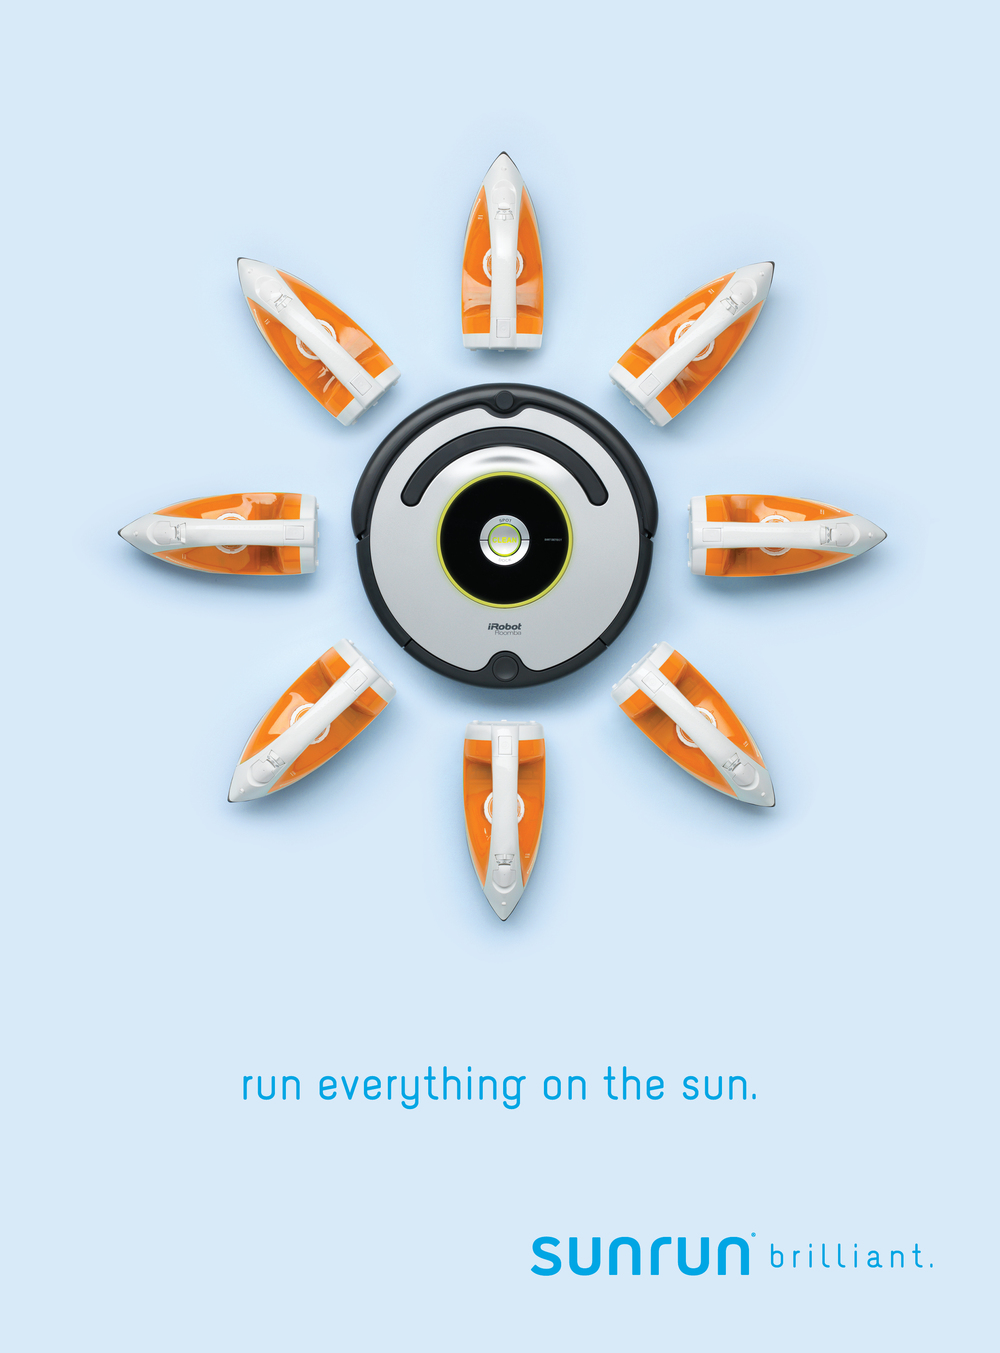 Sunrun-Brilliant-Eun-Everything-On-the-Sun-Irons